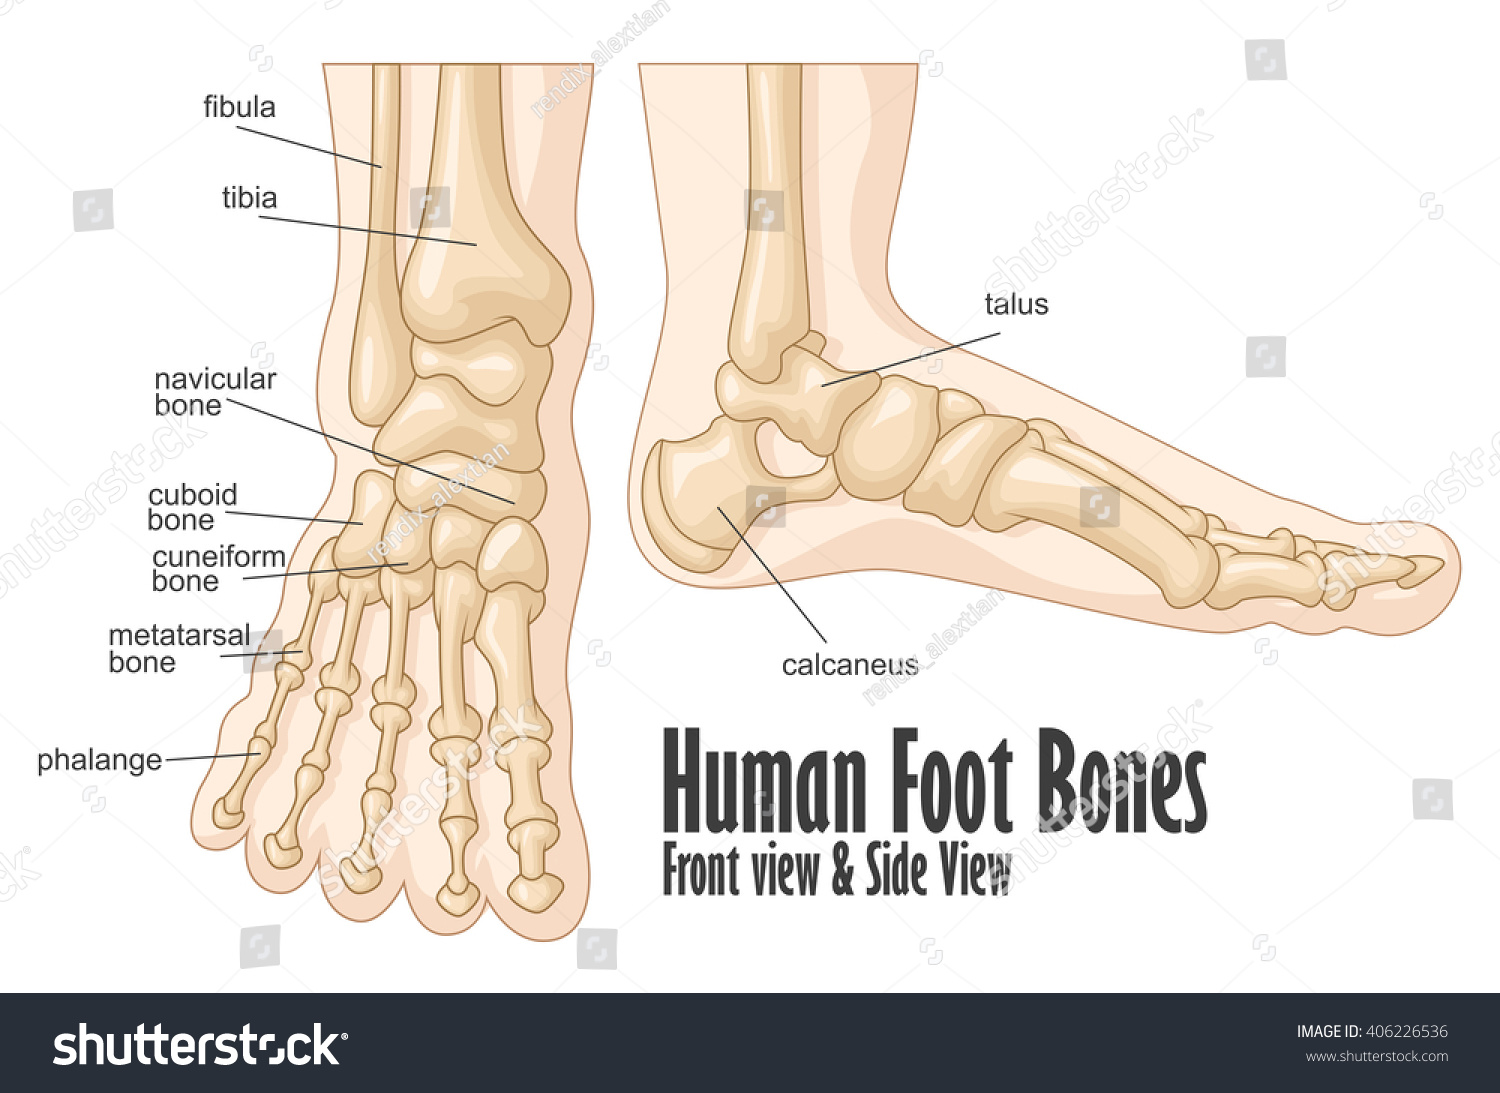 Human Foot Bones Front Side View Stock Illustration 406226536 ...